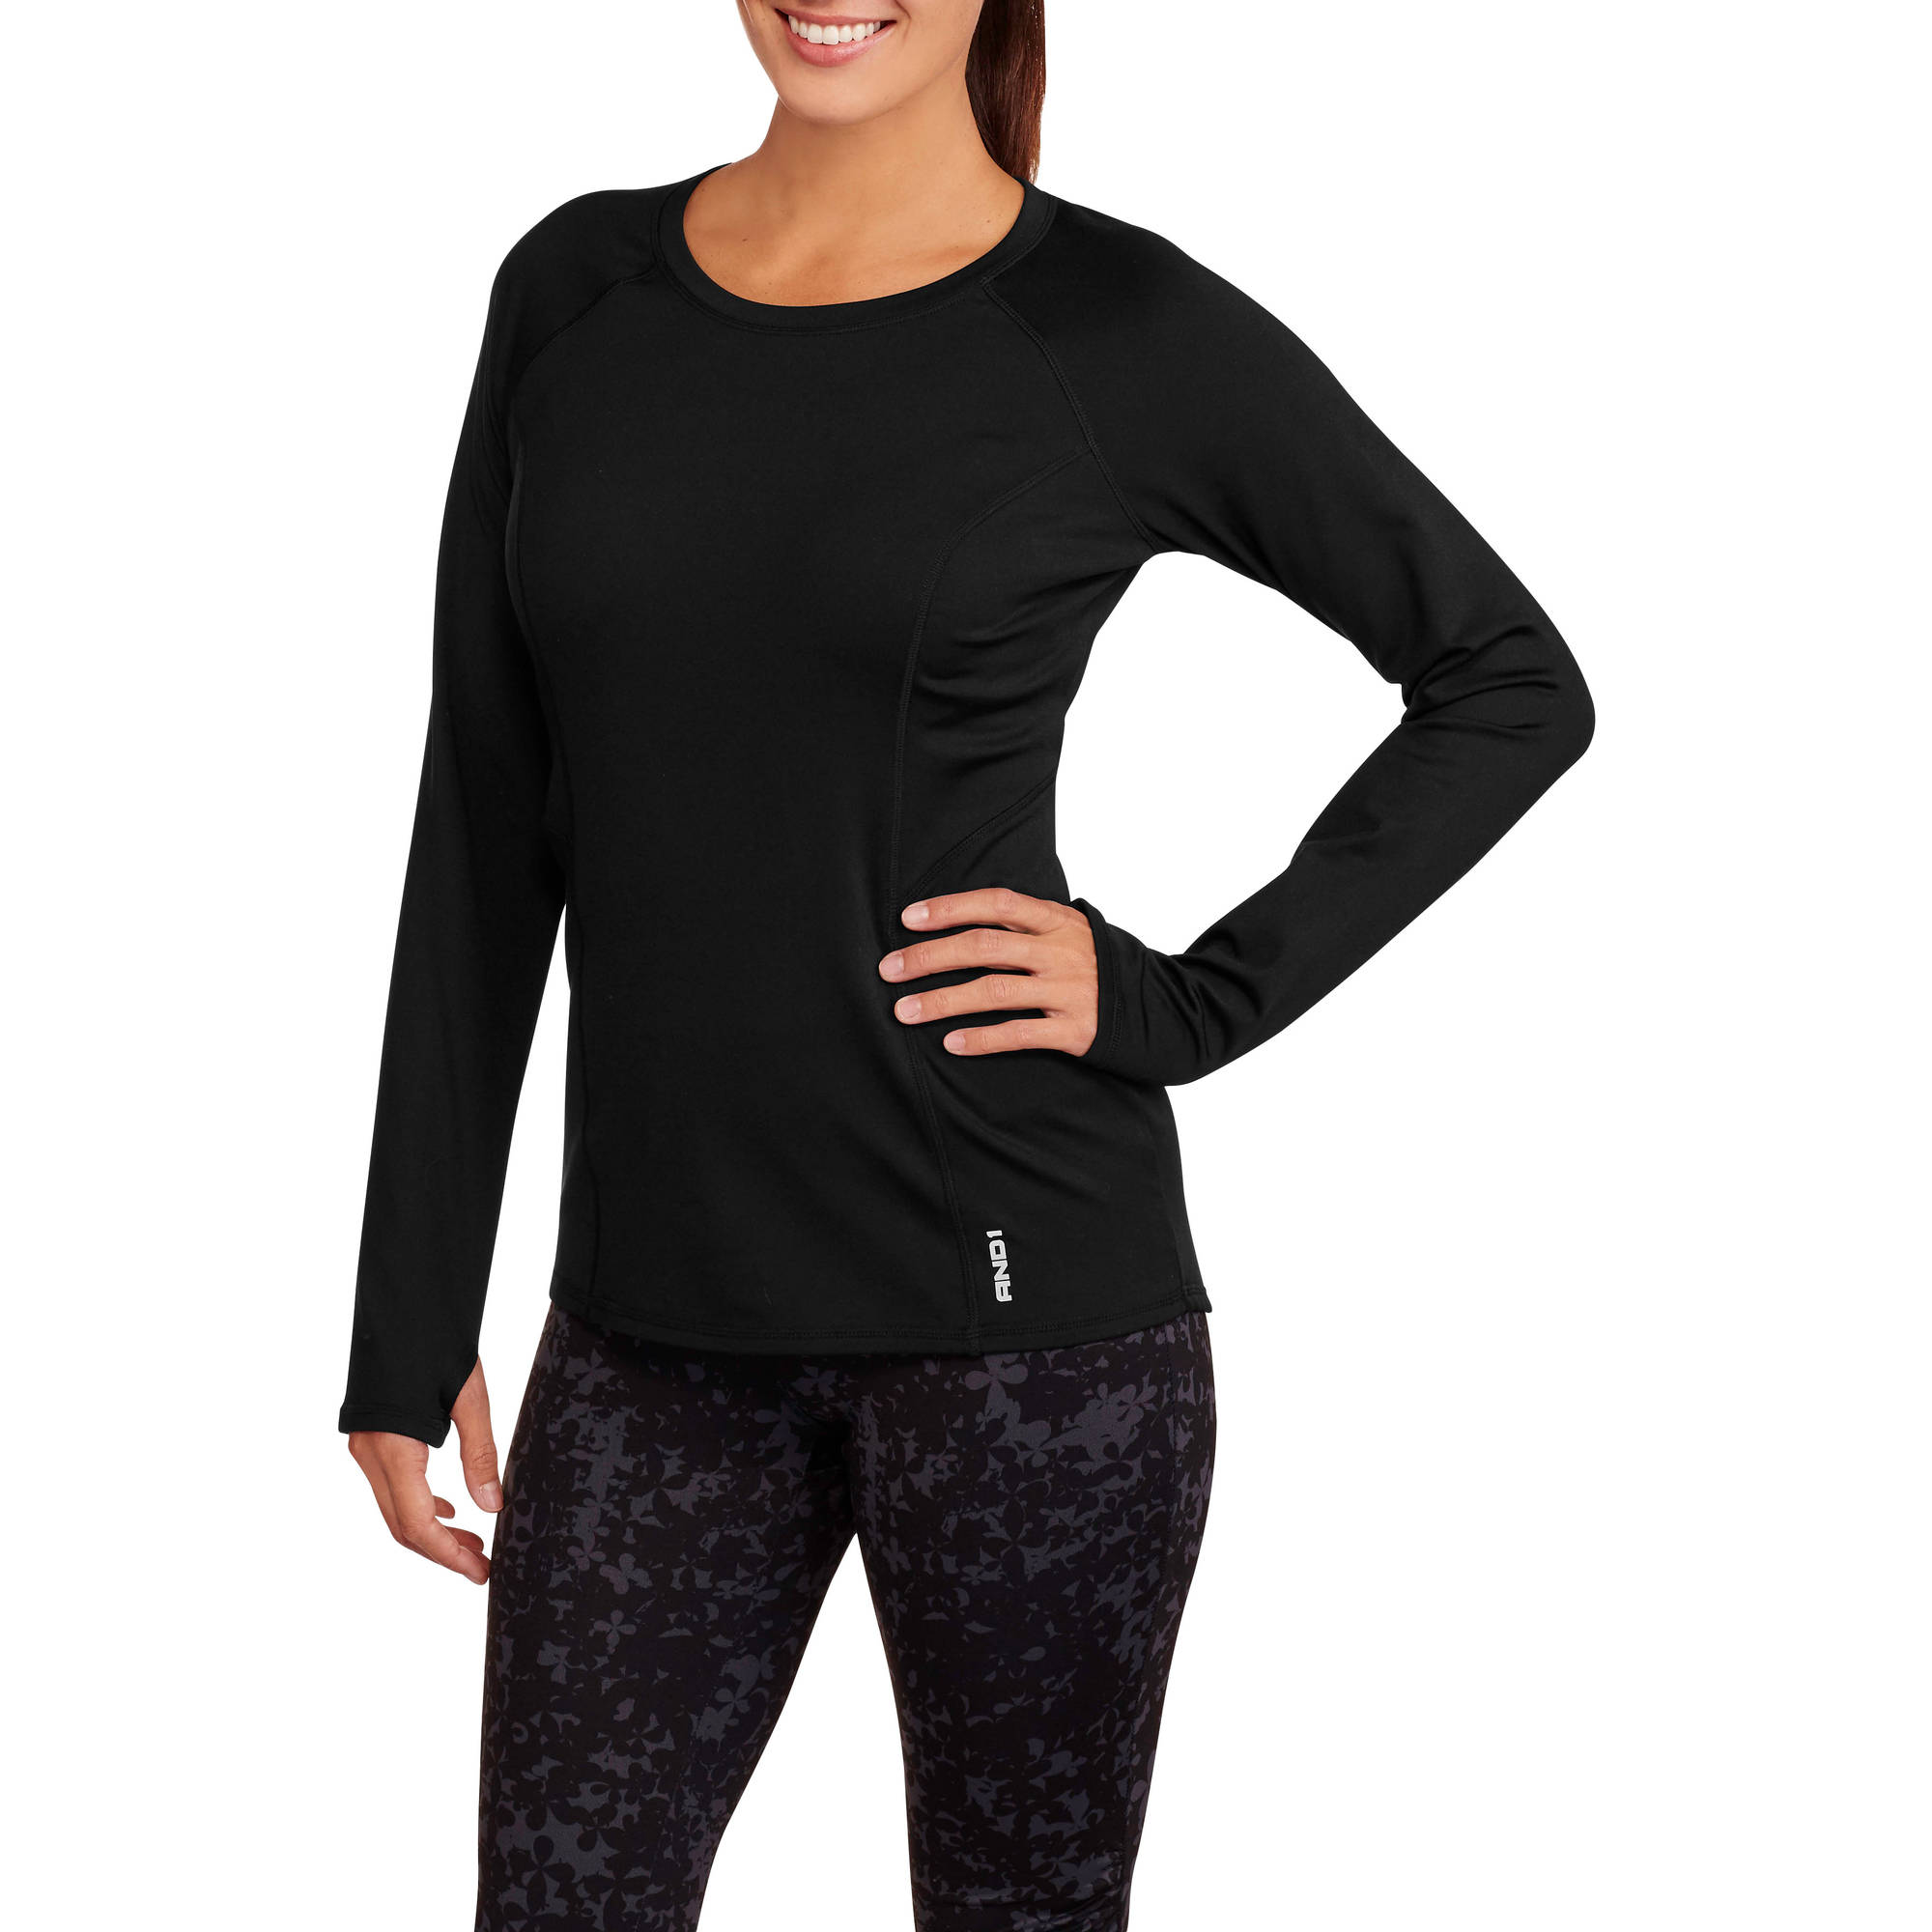 AND1 Women's Triumph Long Sleeve Performance Top